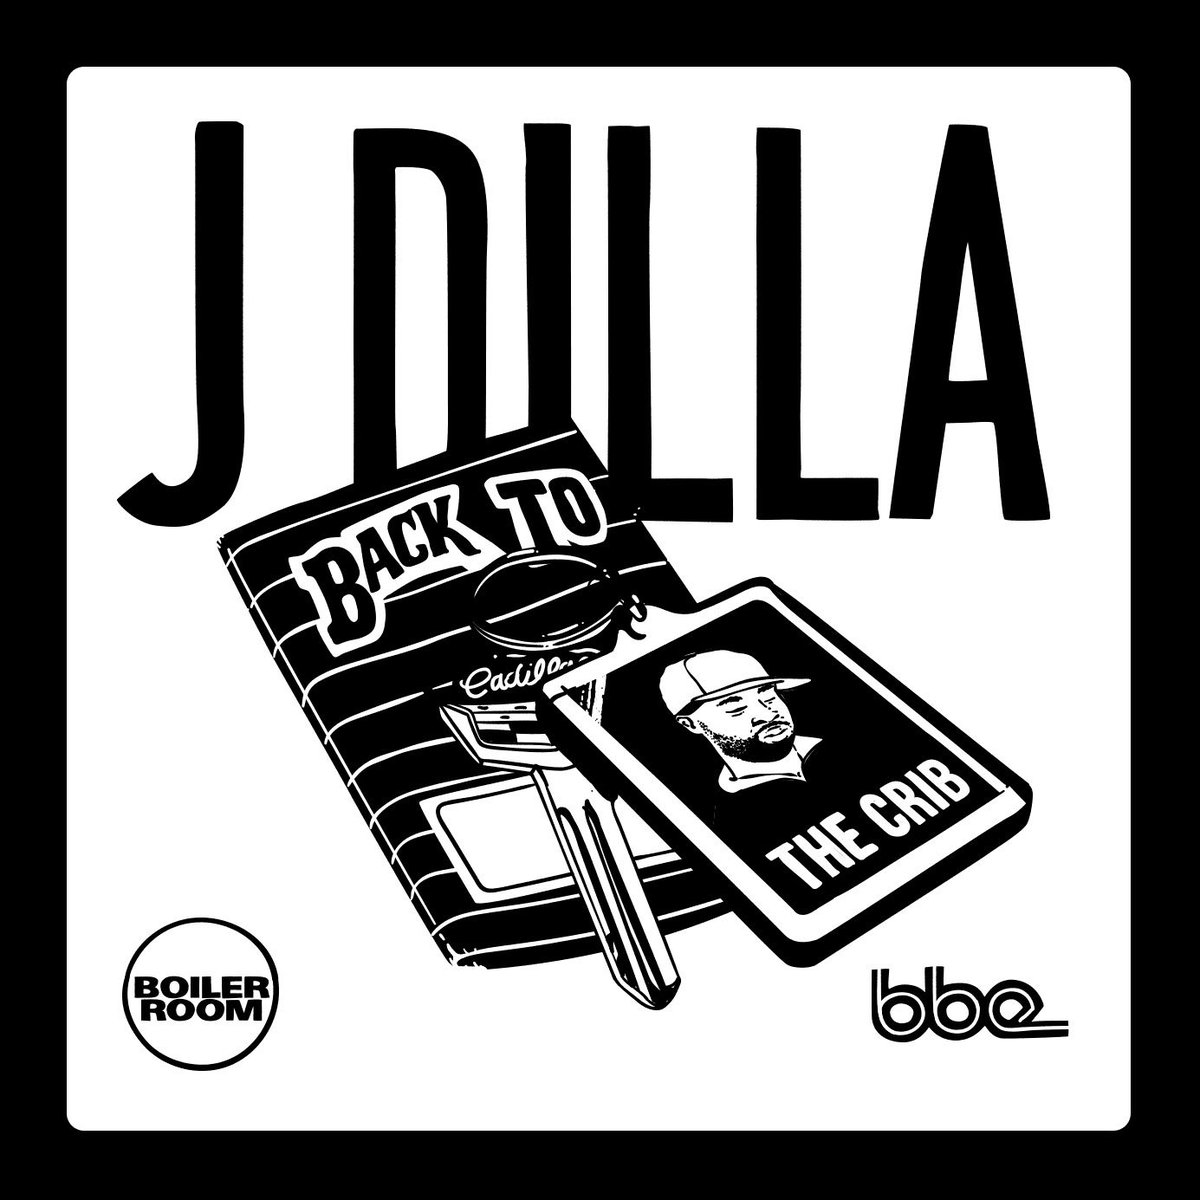 unearthed a mixtape dilla made between 1999-2000. previously understood as folklore: https://t.co/fTvEKR9wwR https://t.co/jmzQcVMern